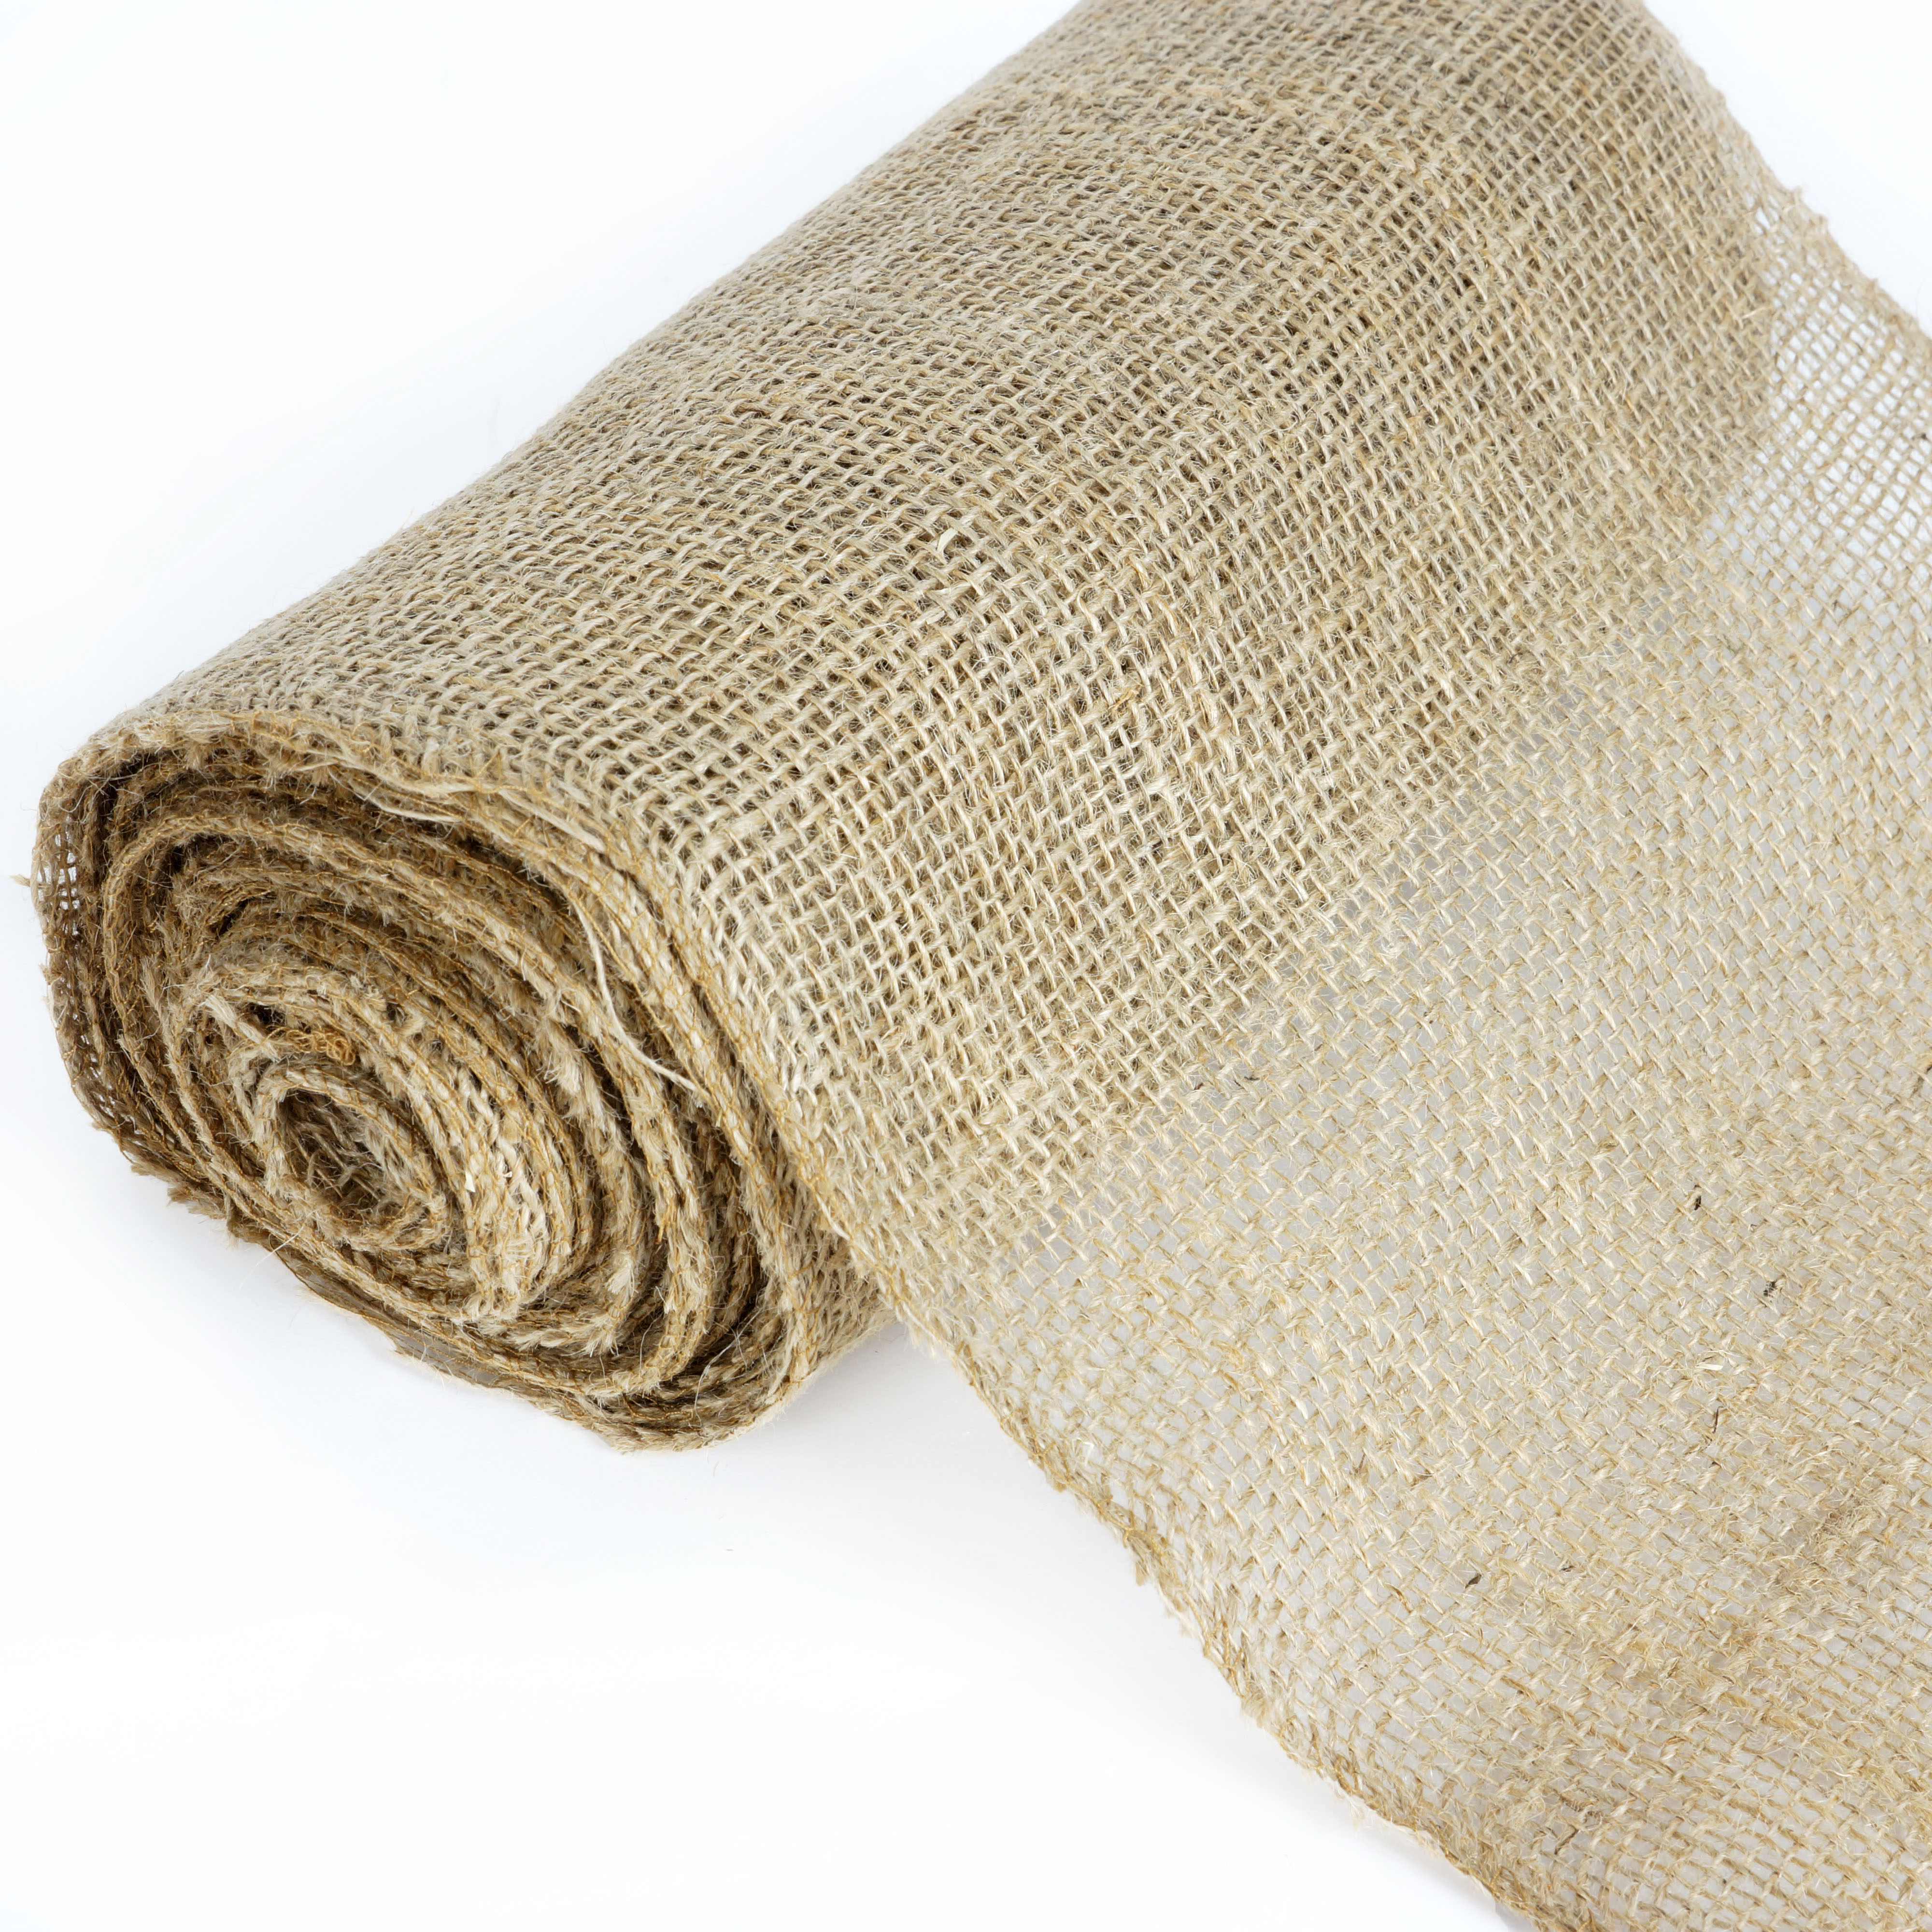 BalsaCircle 12 inch x 10 yards Natural Brown Burlap Fabric Roll